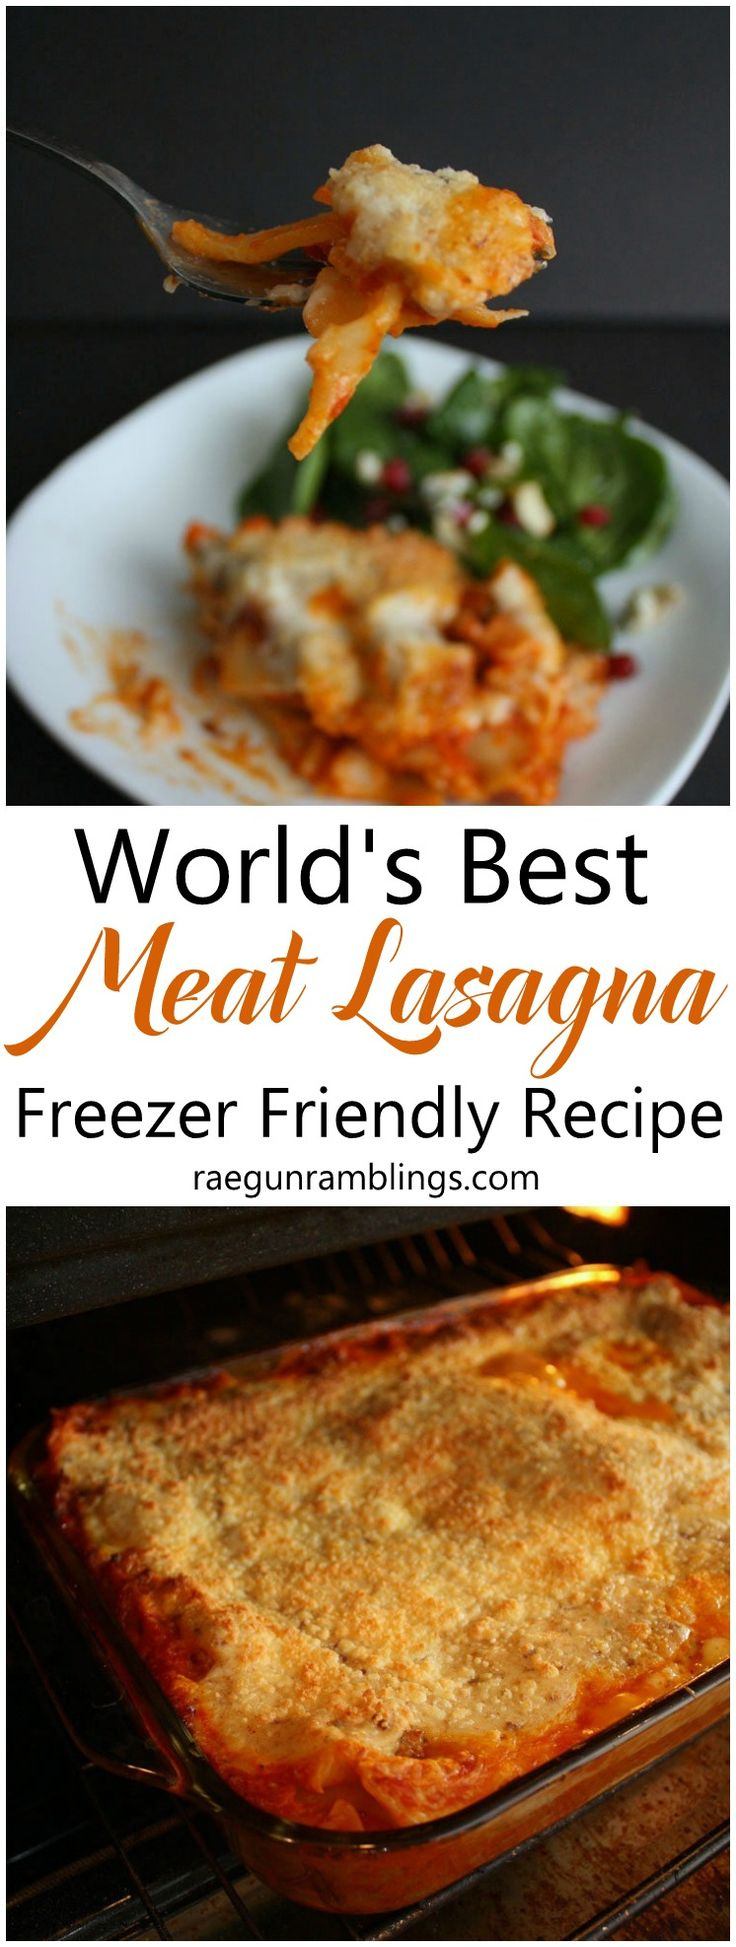 Hands down the best lasagna recipe. Already made it twice and it freezes nicely for an easy weeknight dinner of meat lasagna.